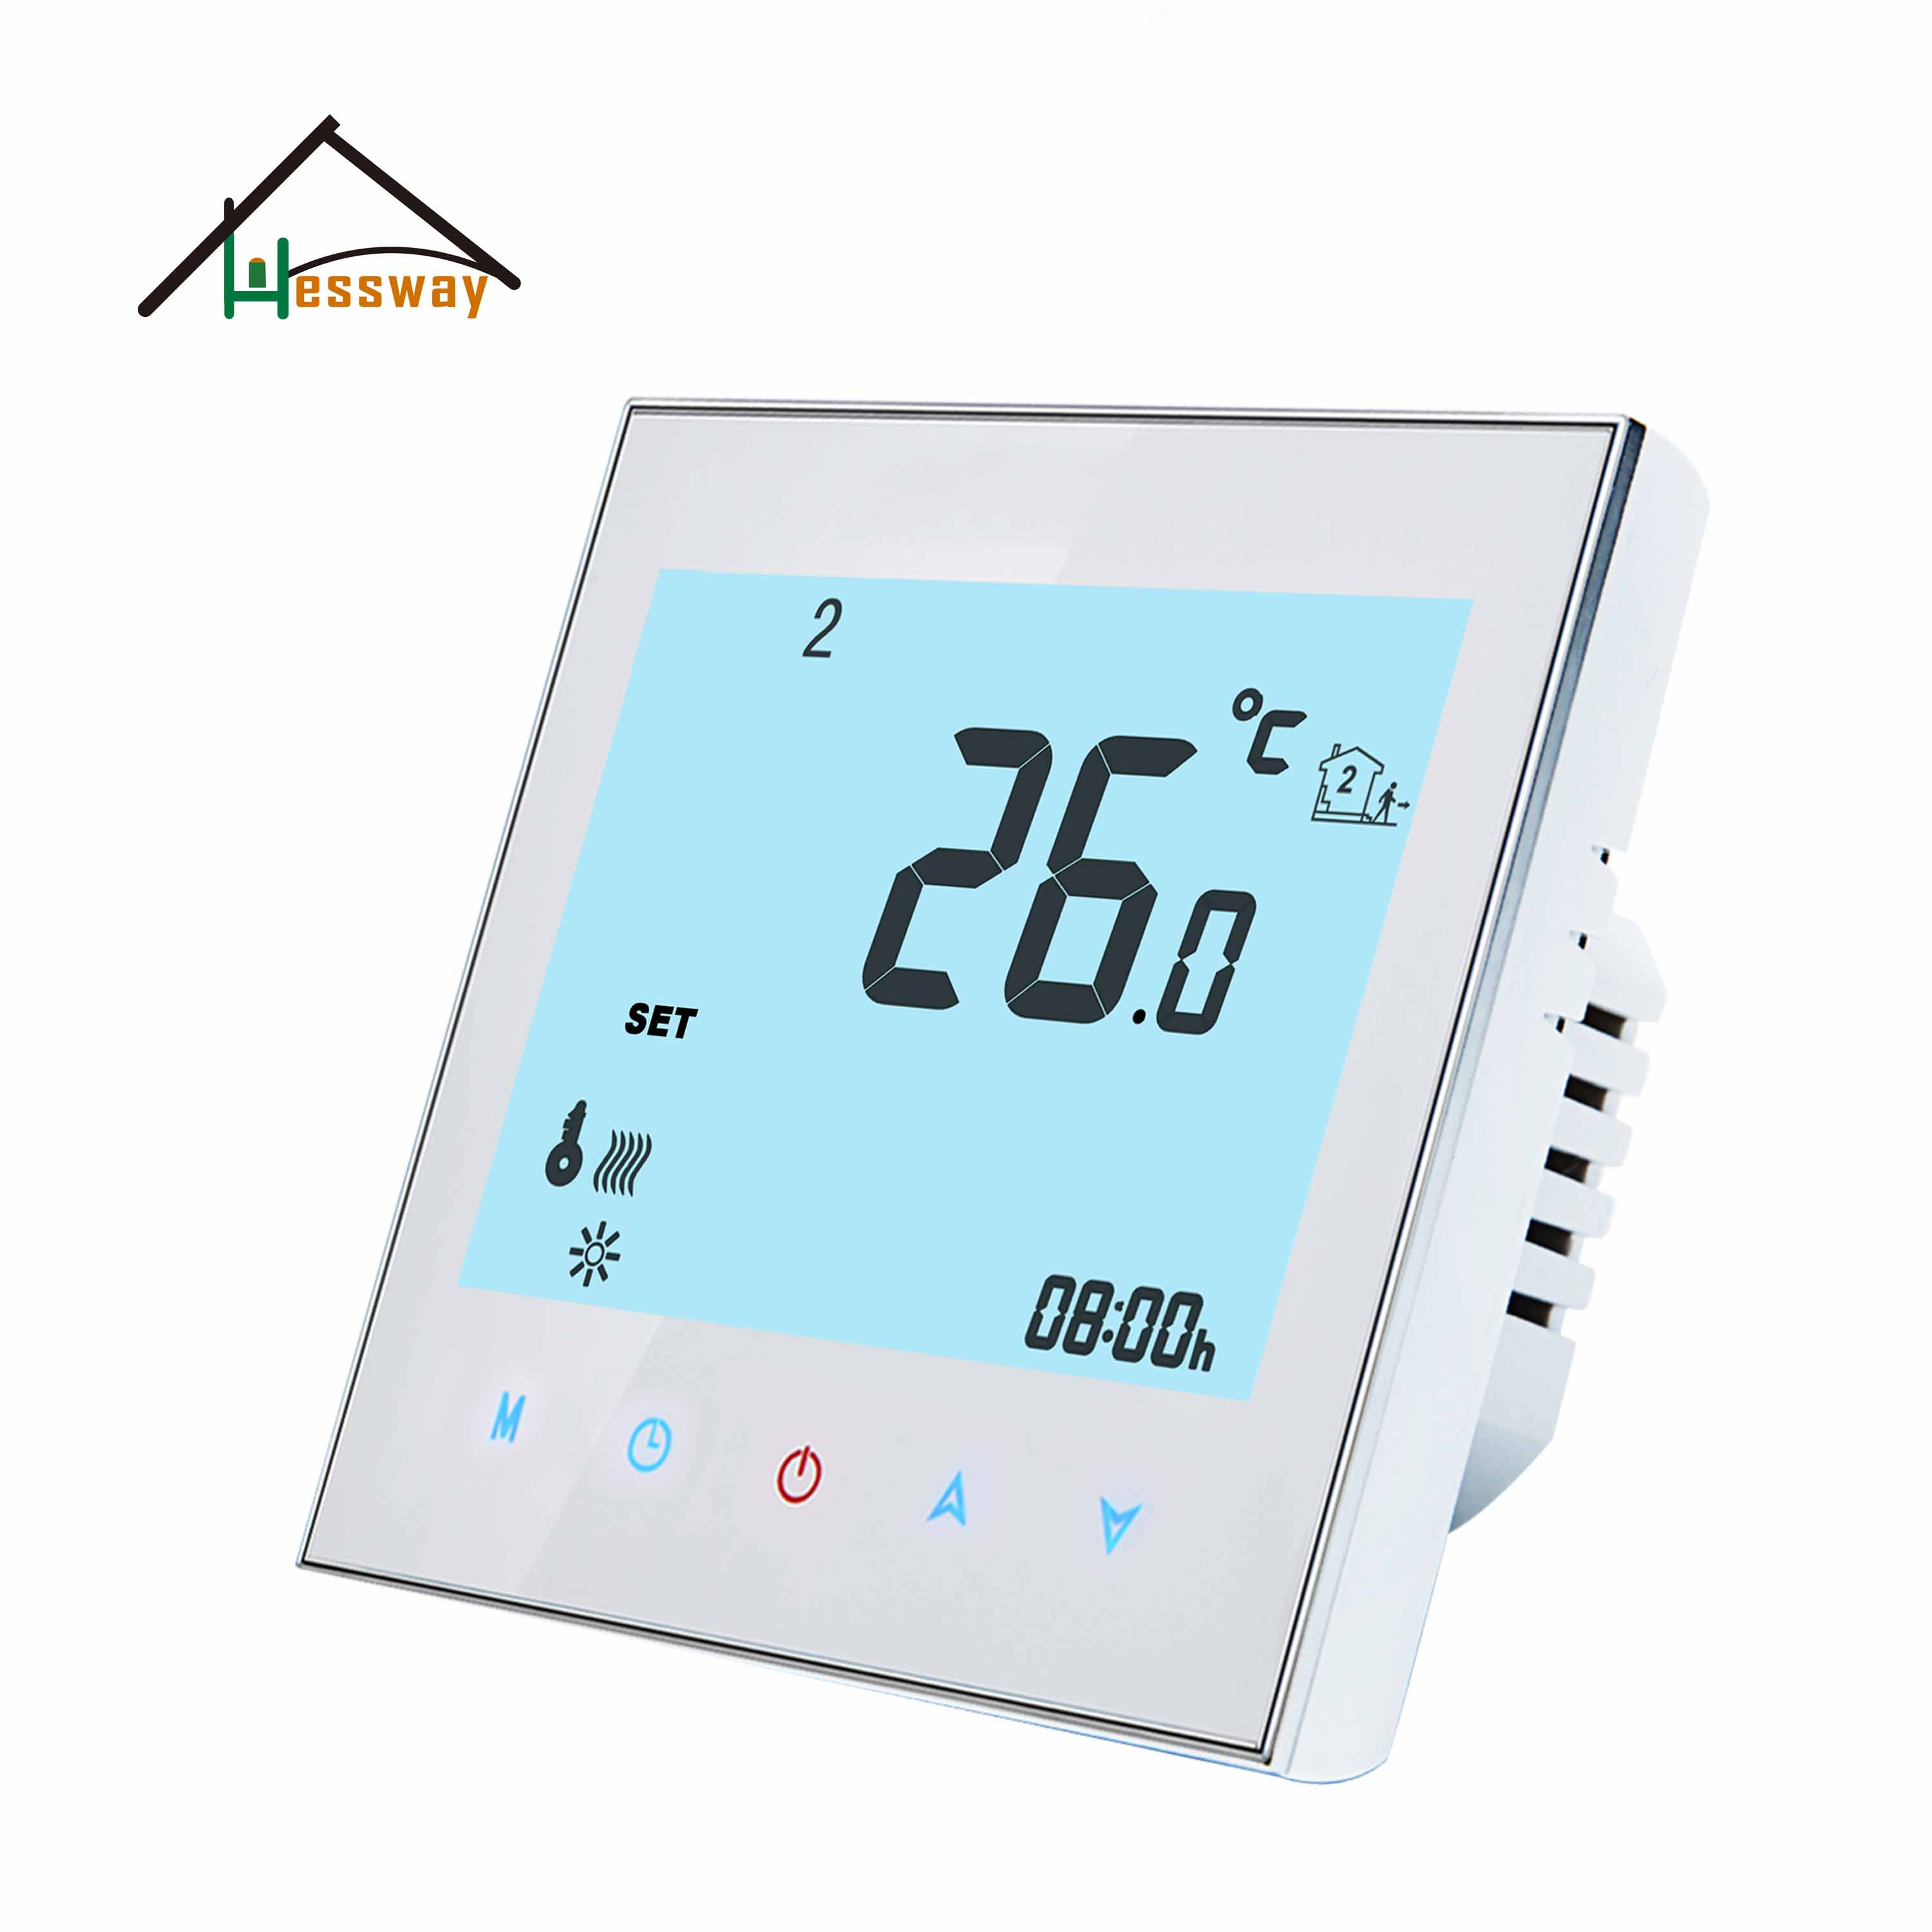 HESSWAY 24v,95-240VAC 2P Heat Cool Temp Smart Thermostat For 0-10V Proportion Output